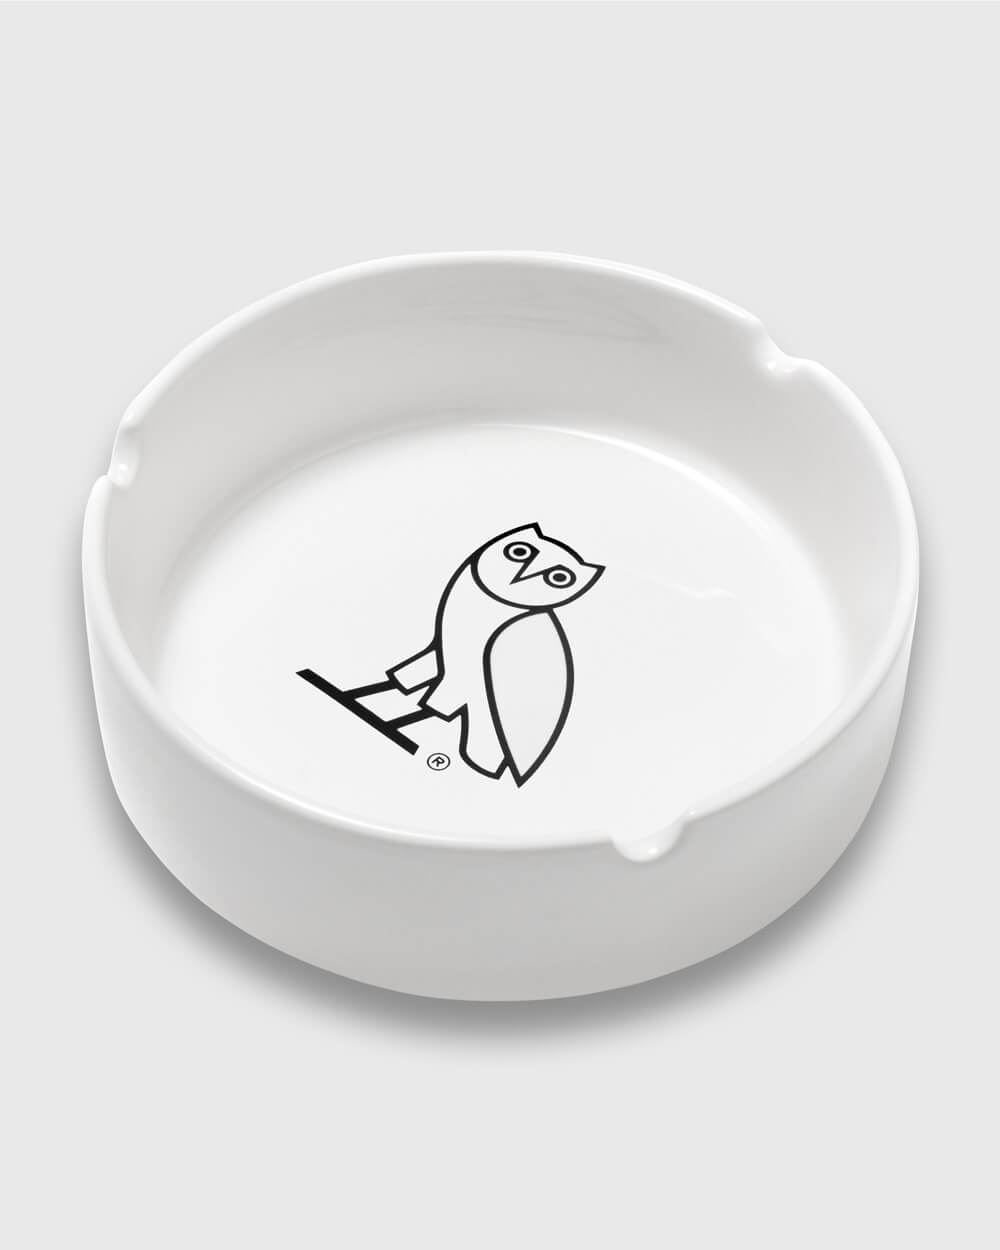 OWL ASHTRAY - WHITE